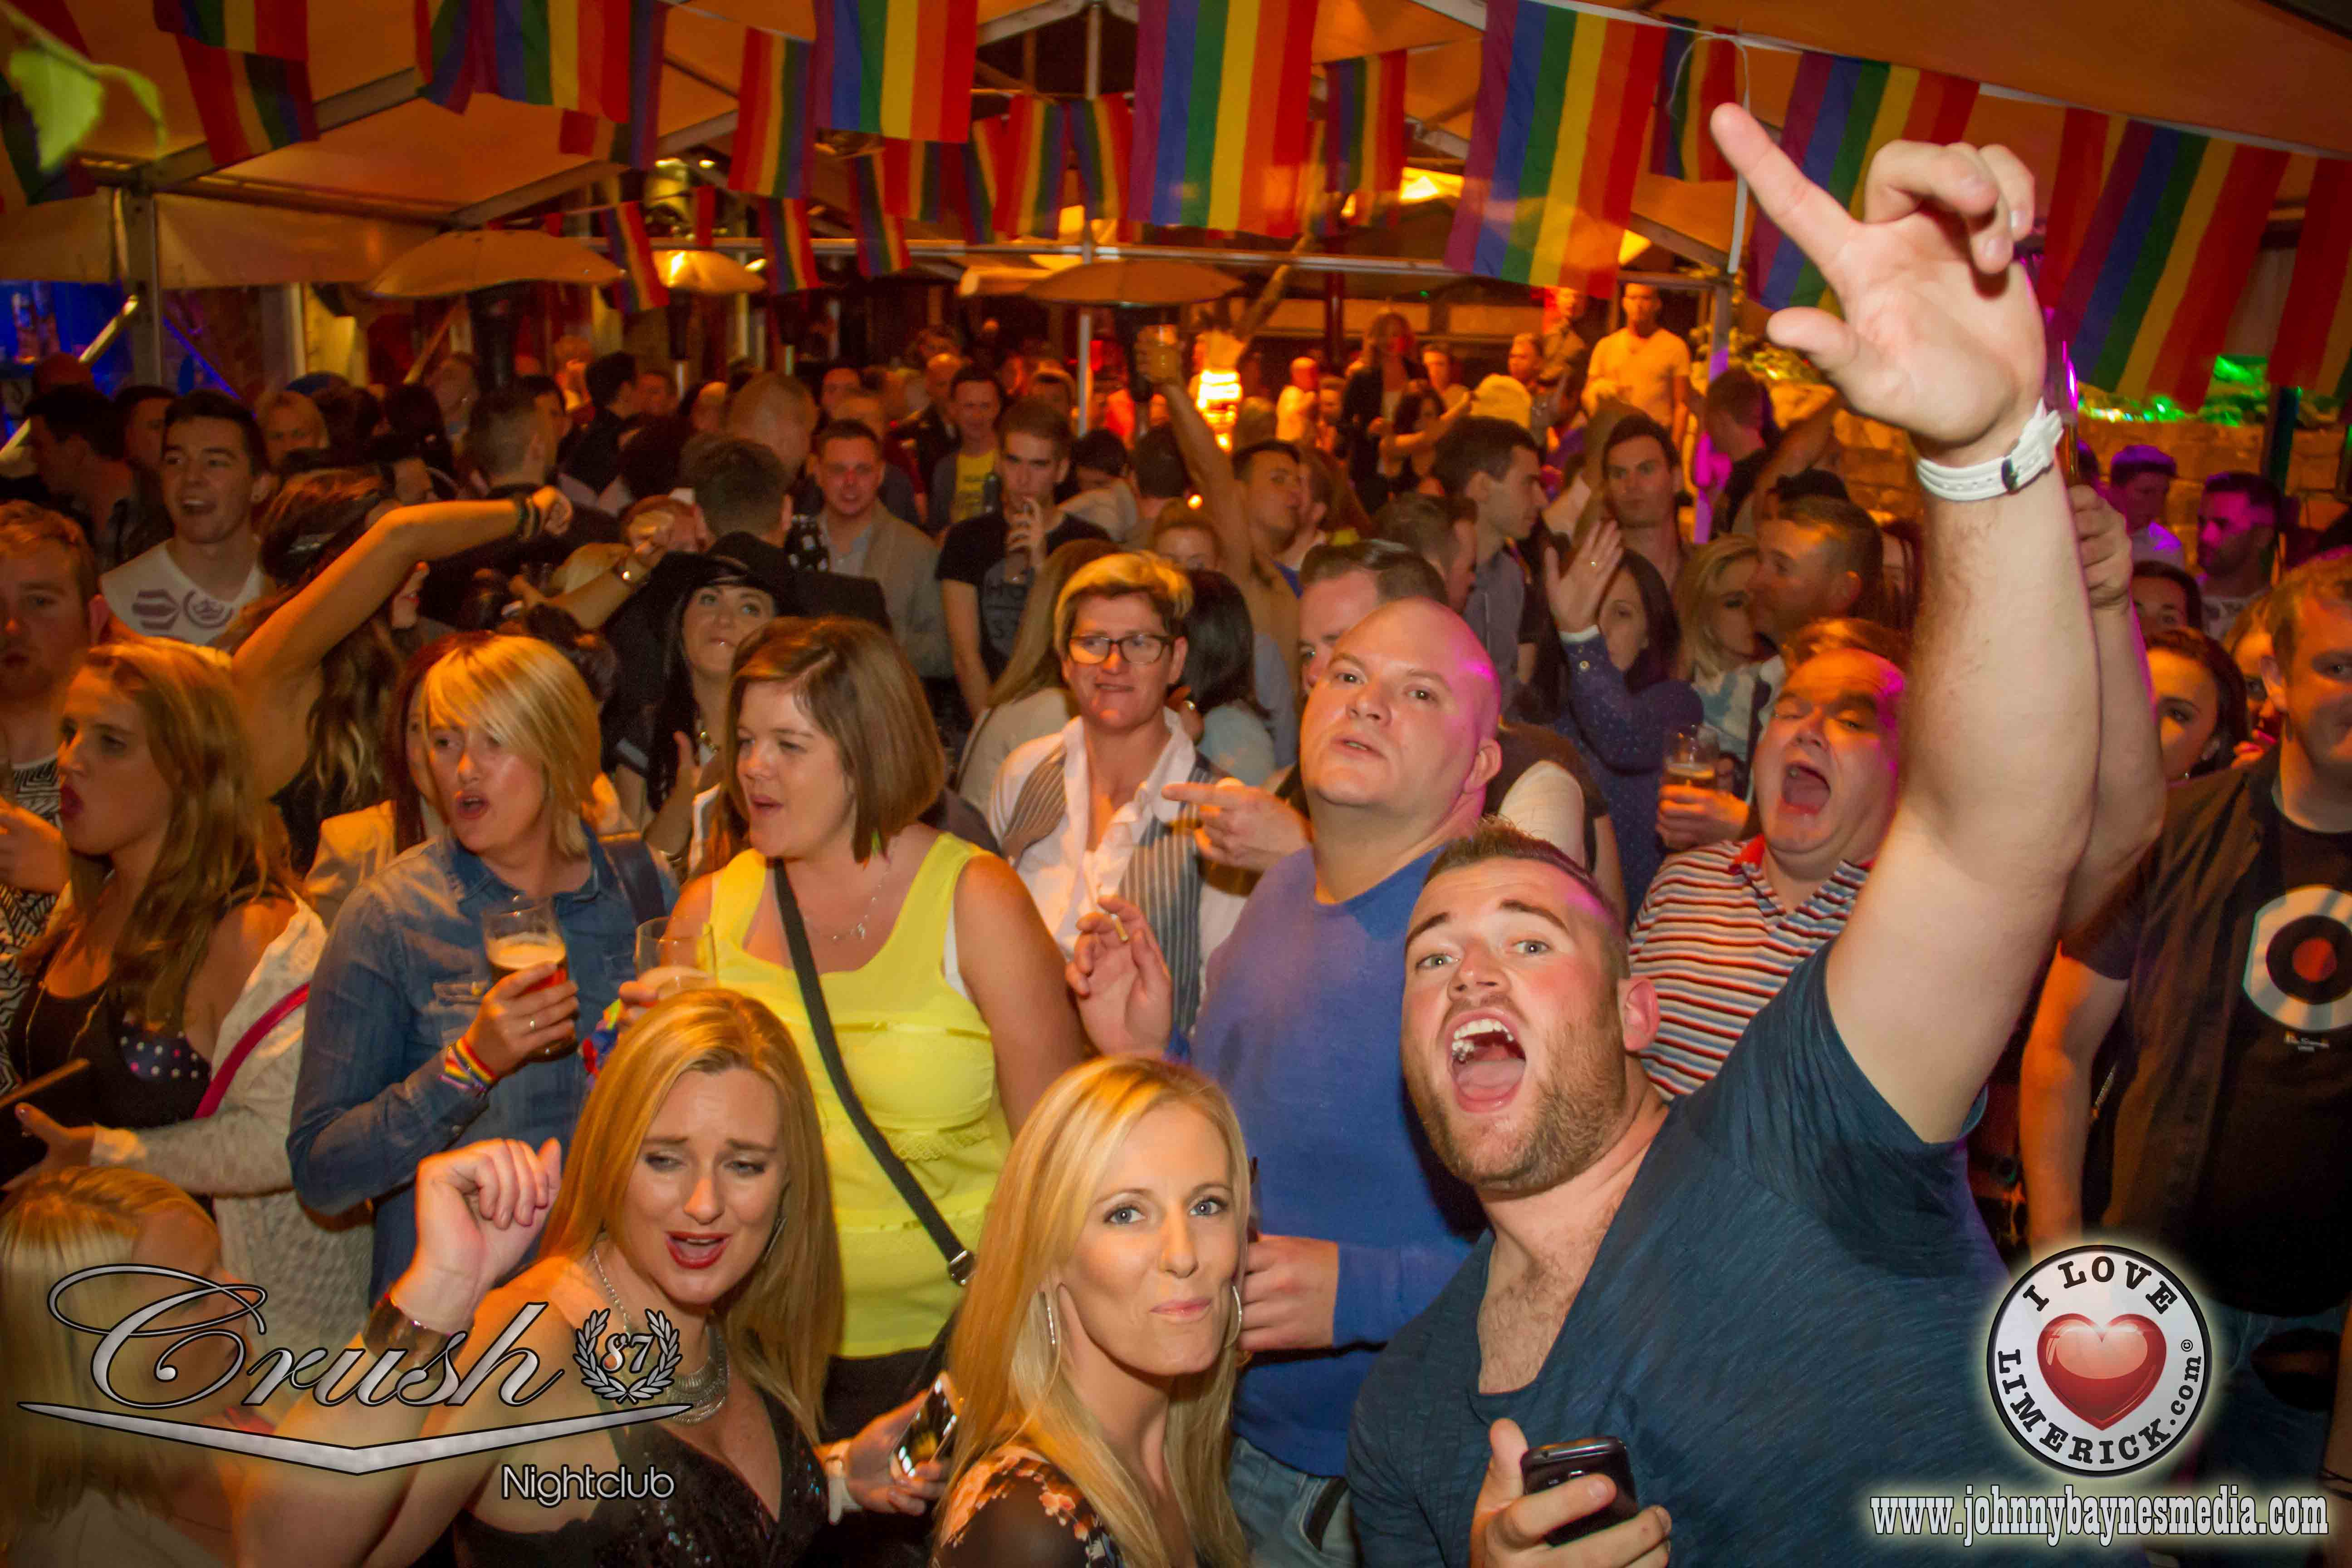 PHOTOS - Limerick Pride 2014 Afterparty Crush